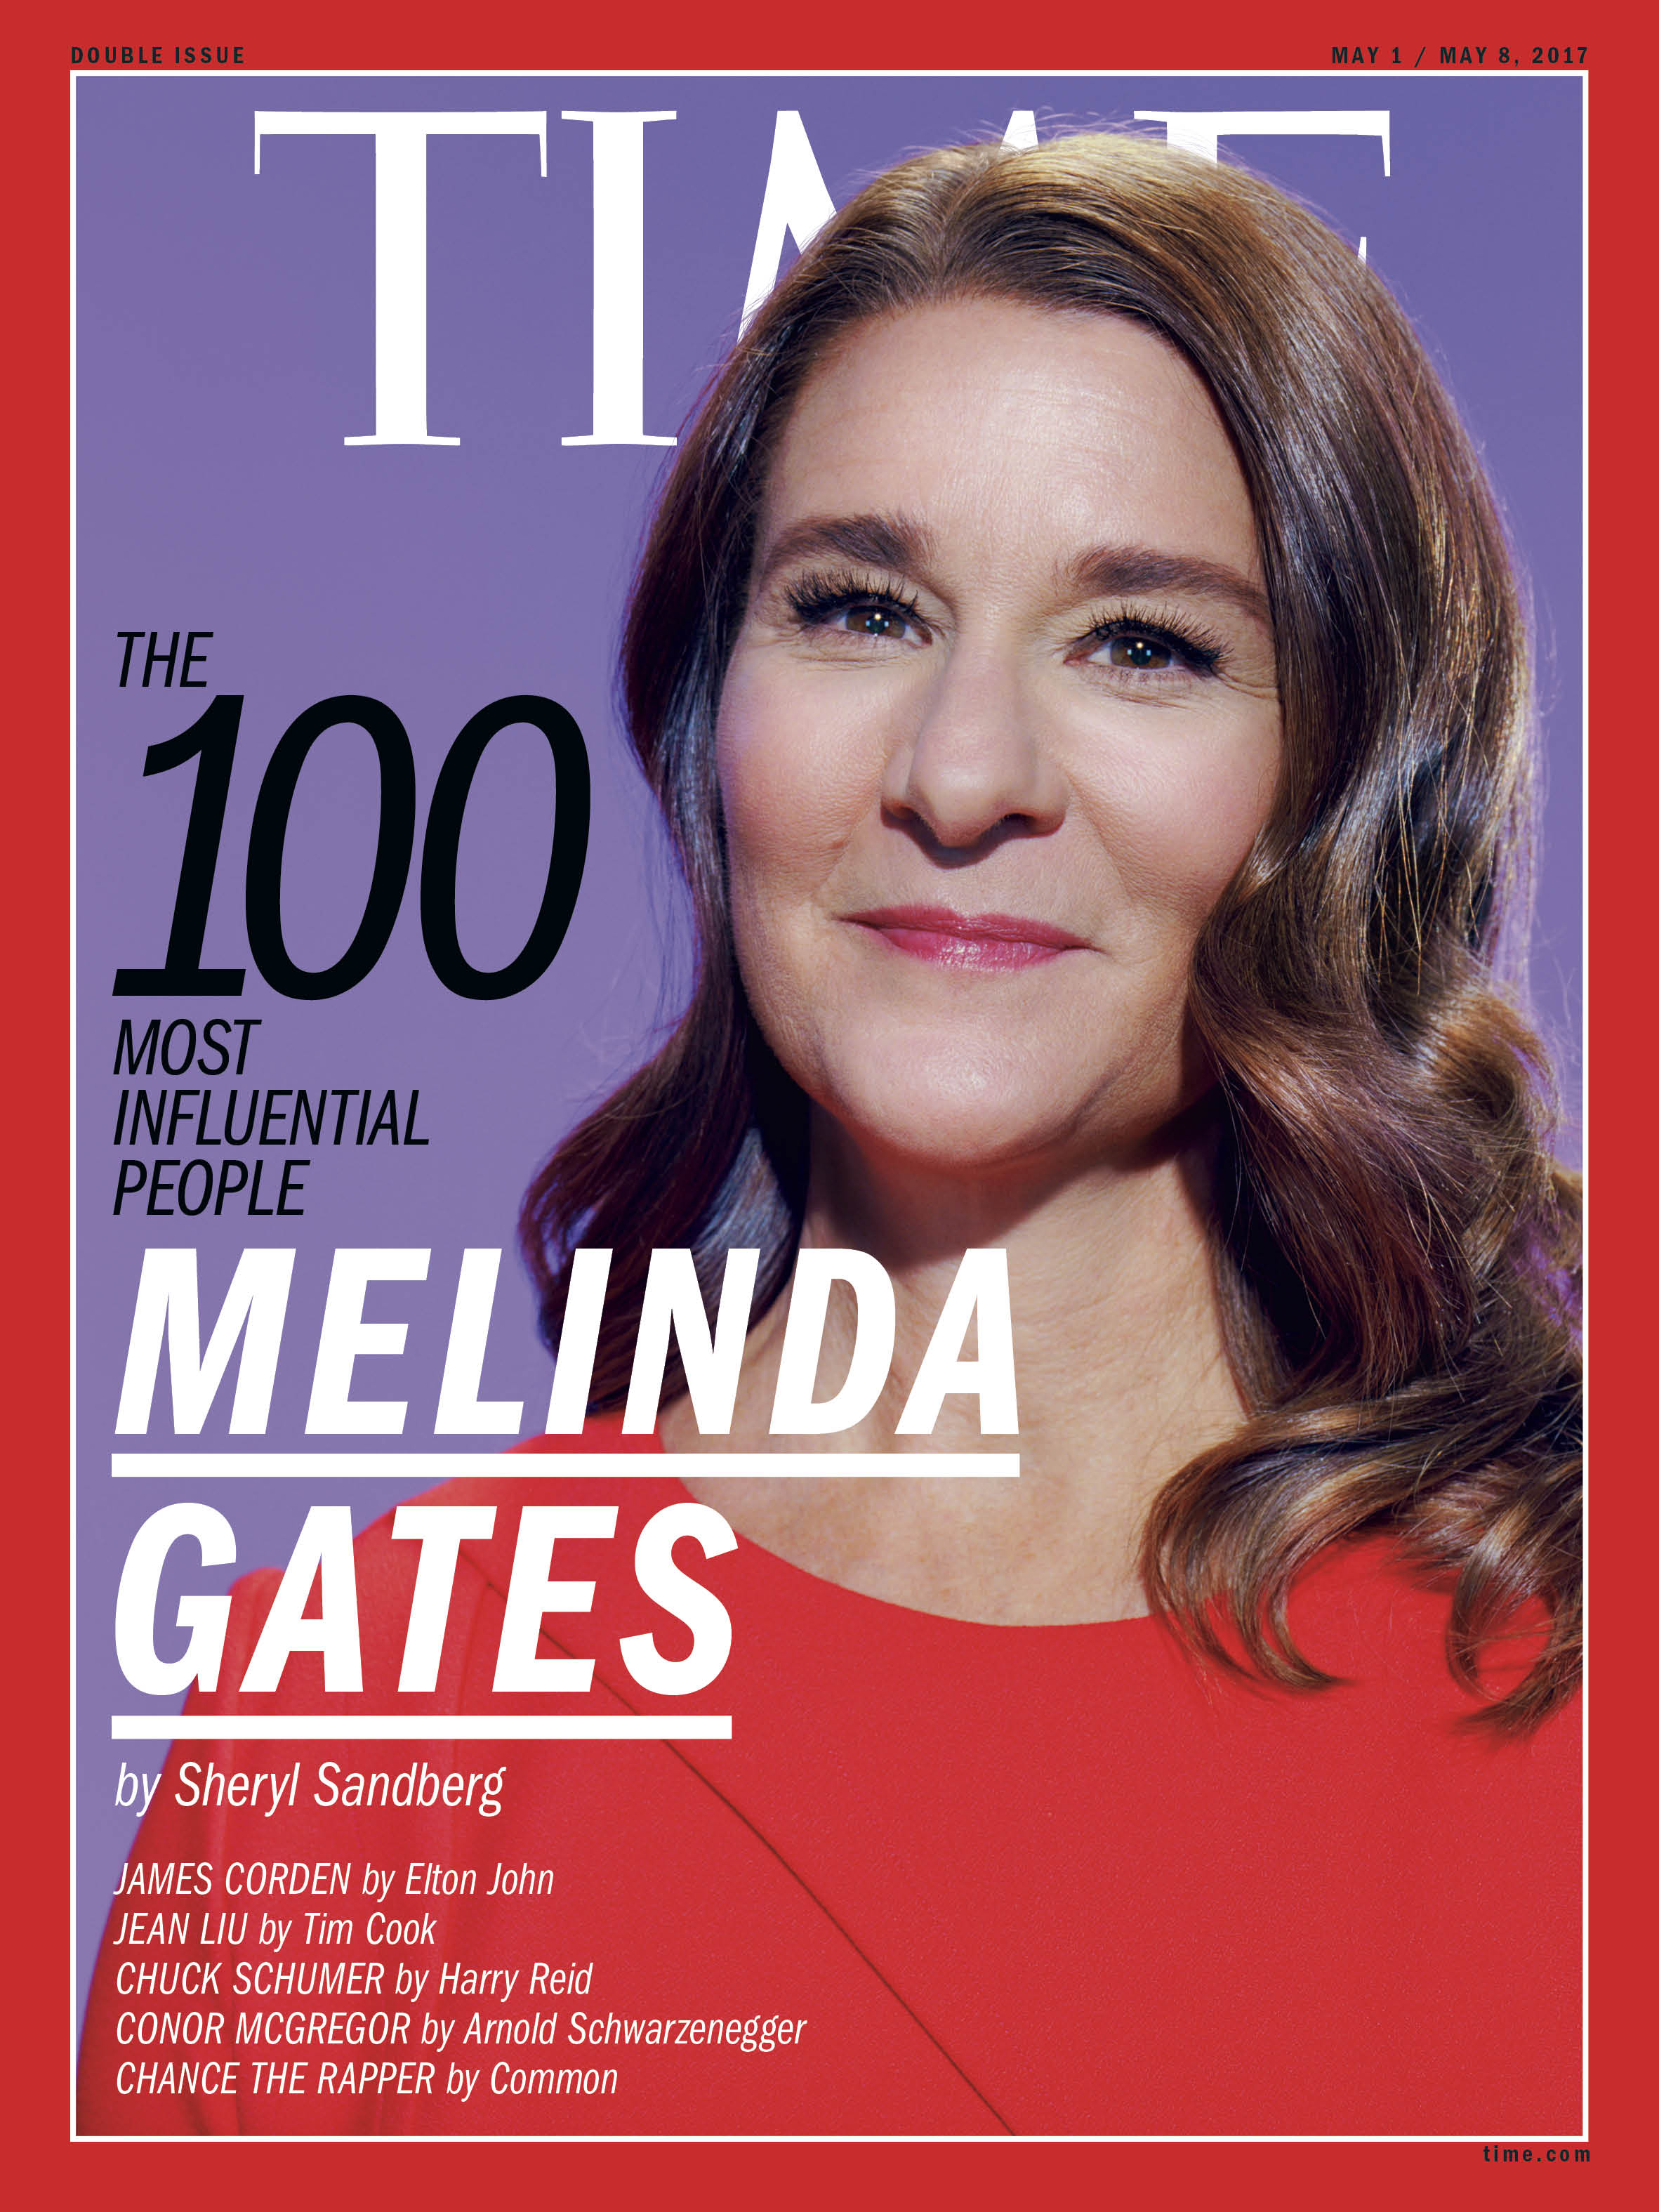 Melinda Gates, TIME 100 Most Influential People cover.